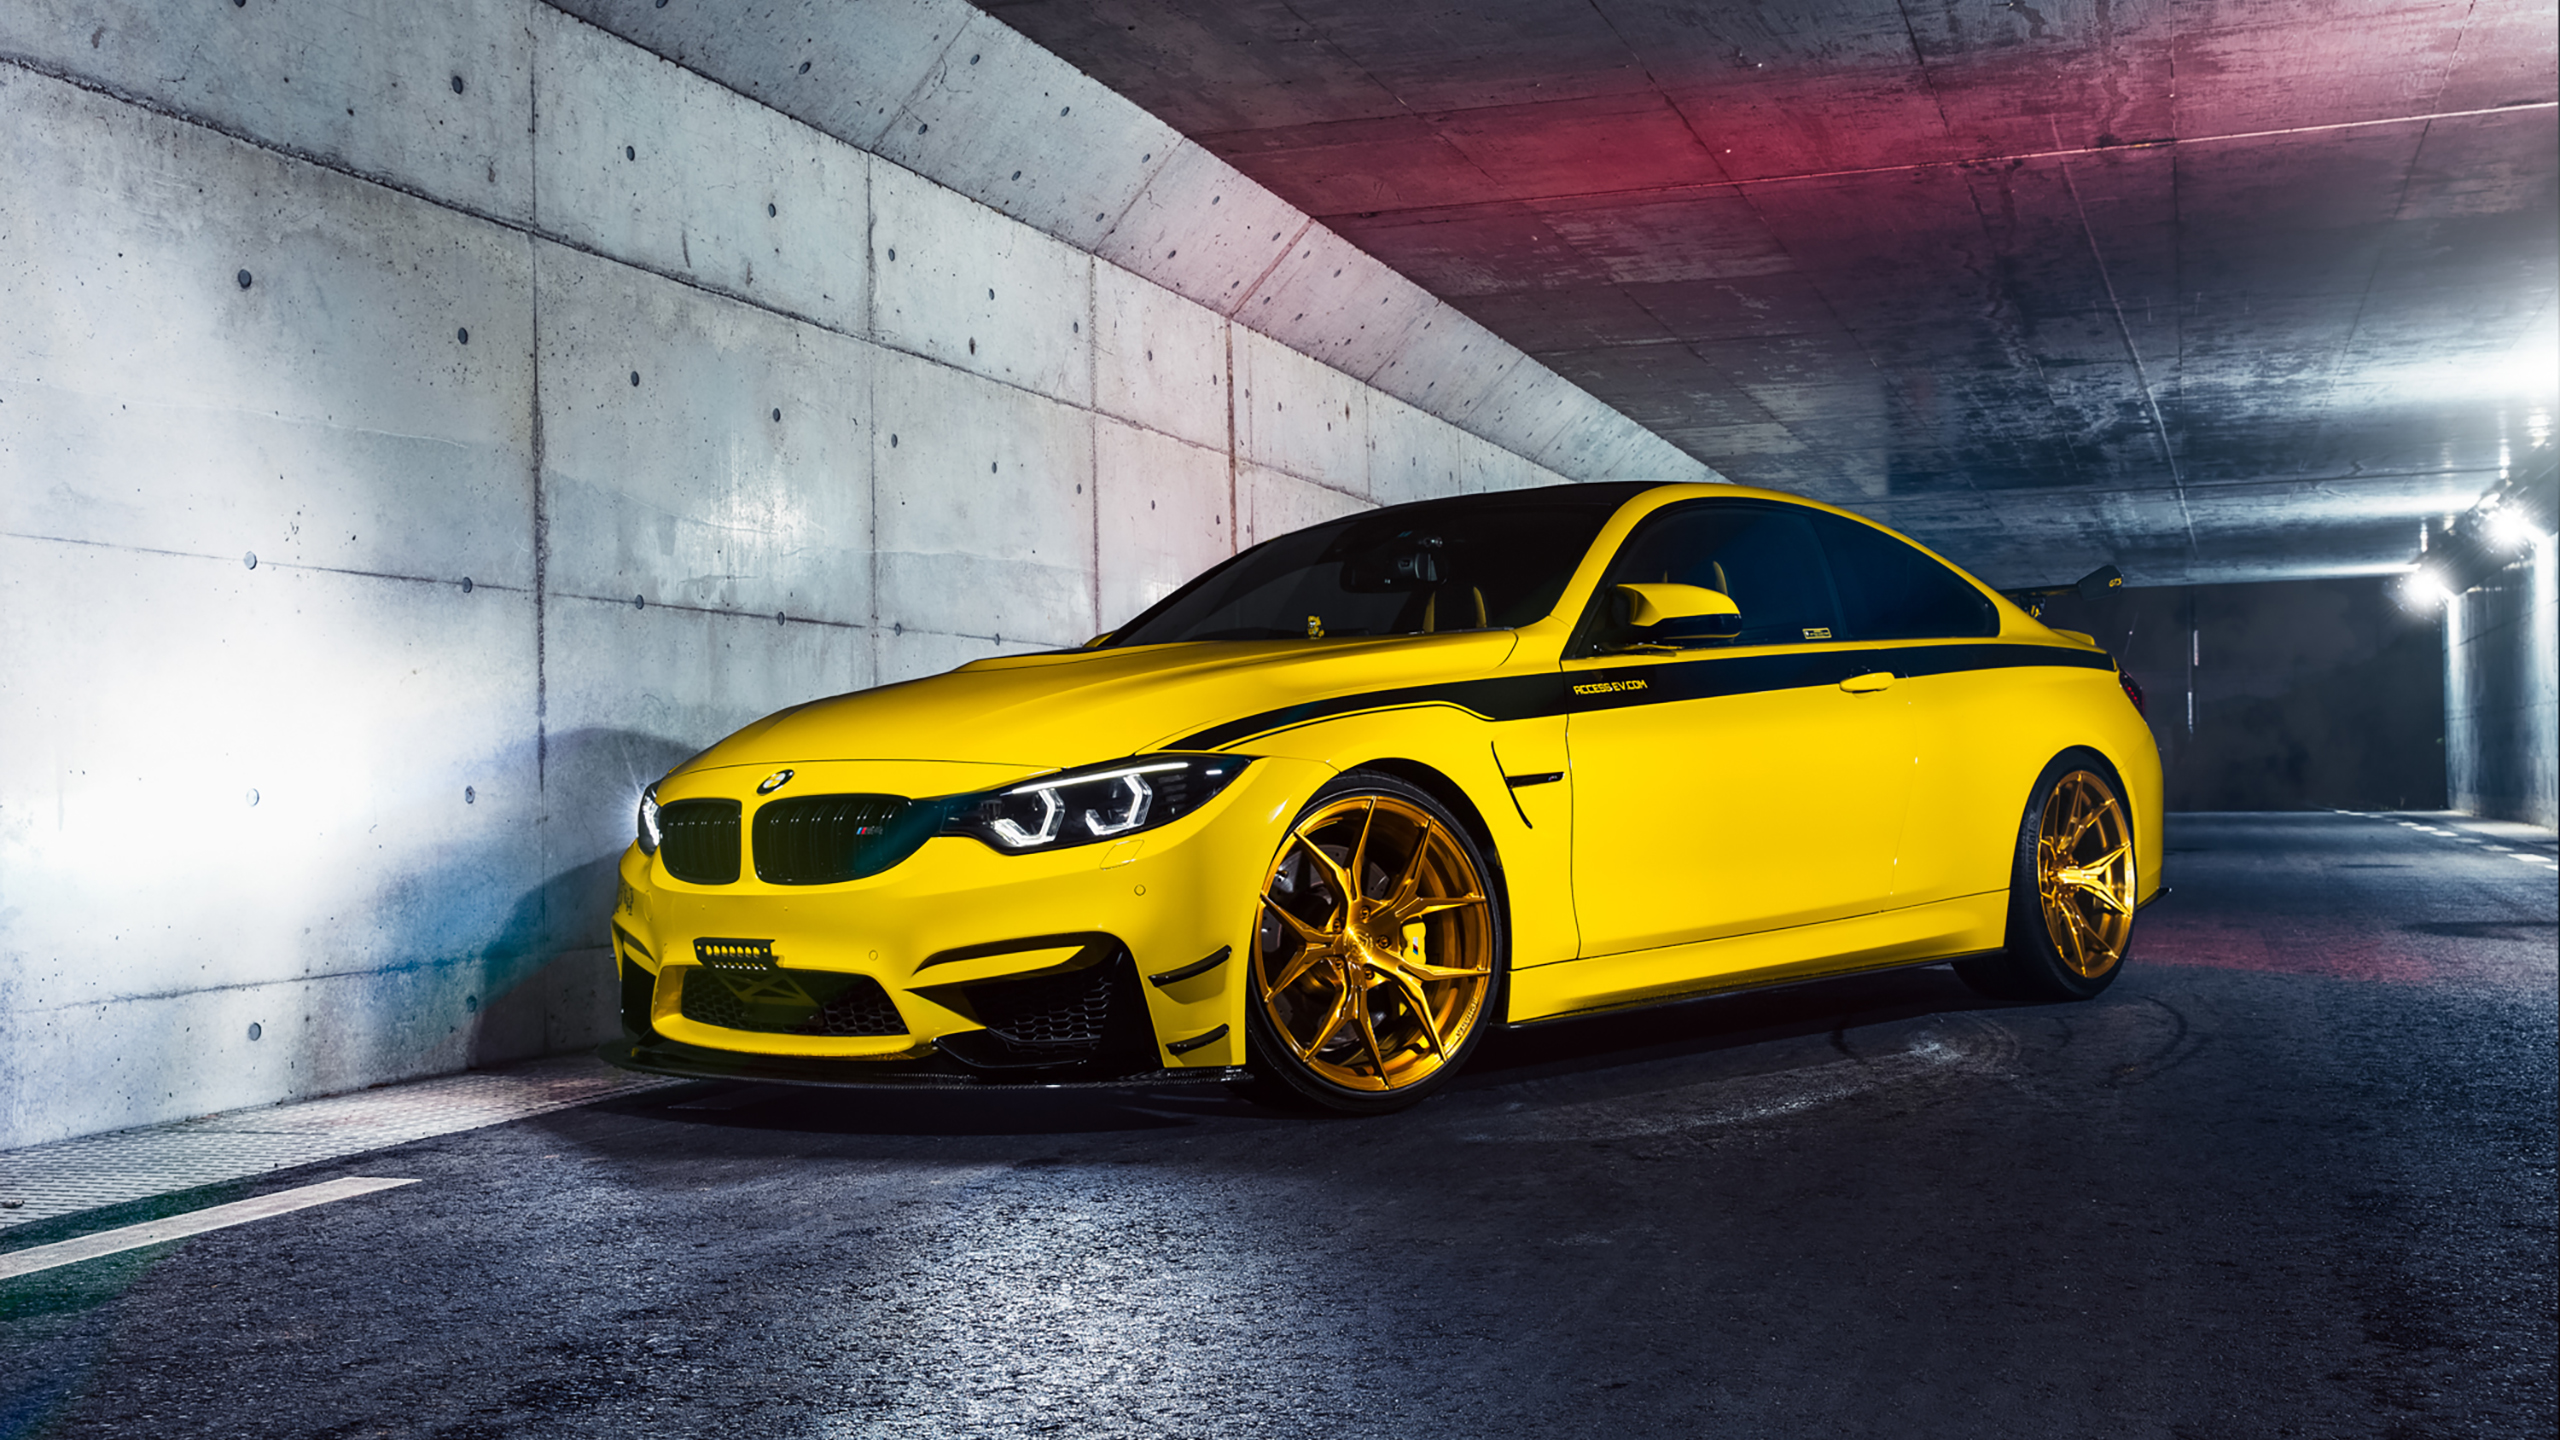 Bmw M4 Hd Wallpaper Background Image 2560x1440 Id 984263 Wallpaper Abyss